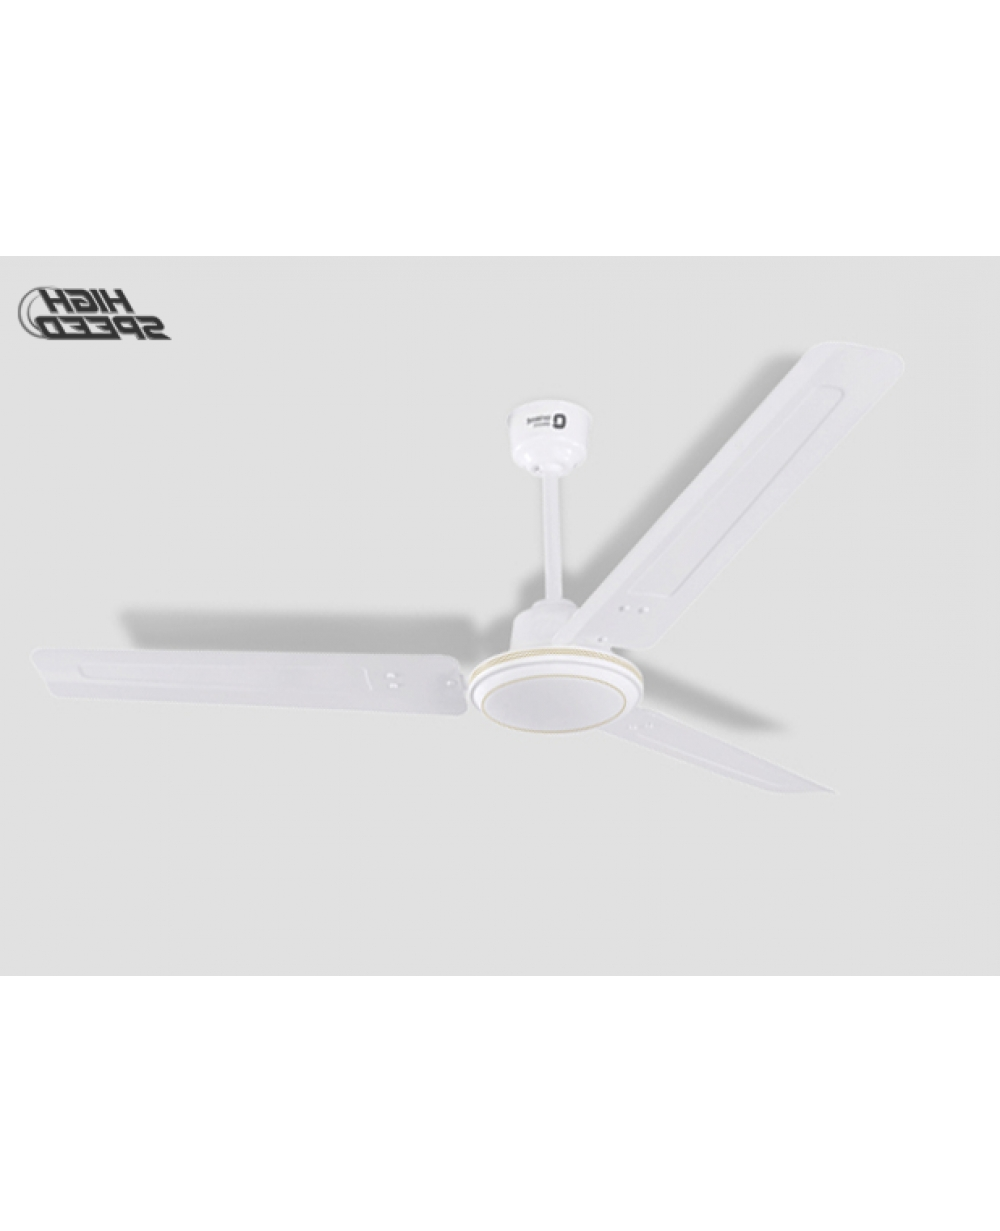 Hurricane Outdoor Ceiling Fans With Favorite Orient New Hurricane 48 Inch 68 Watt High Speed Ceiling Fan (White) (Gallery 6 of 20)